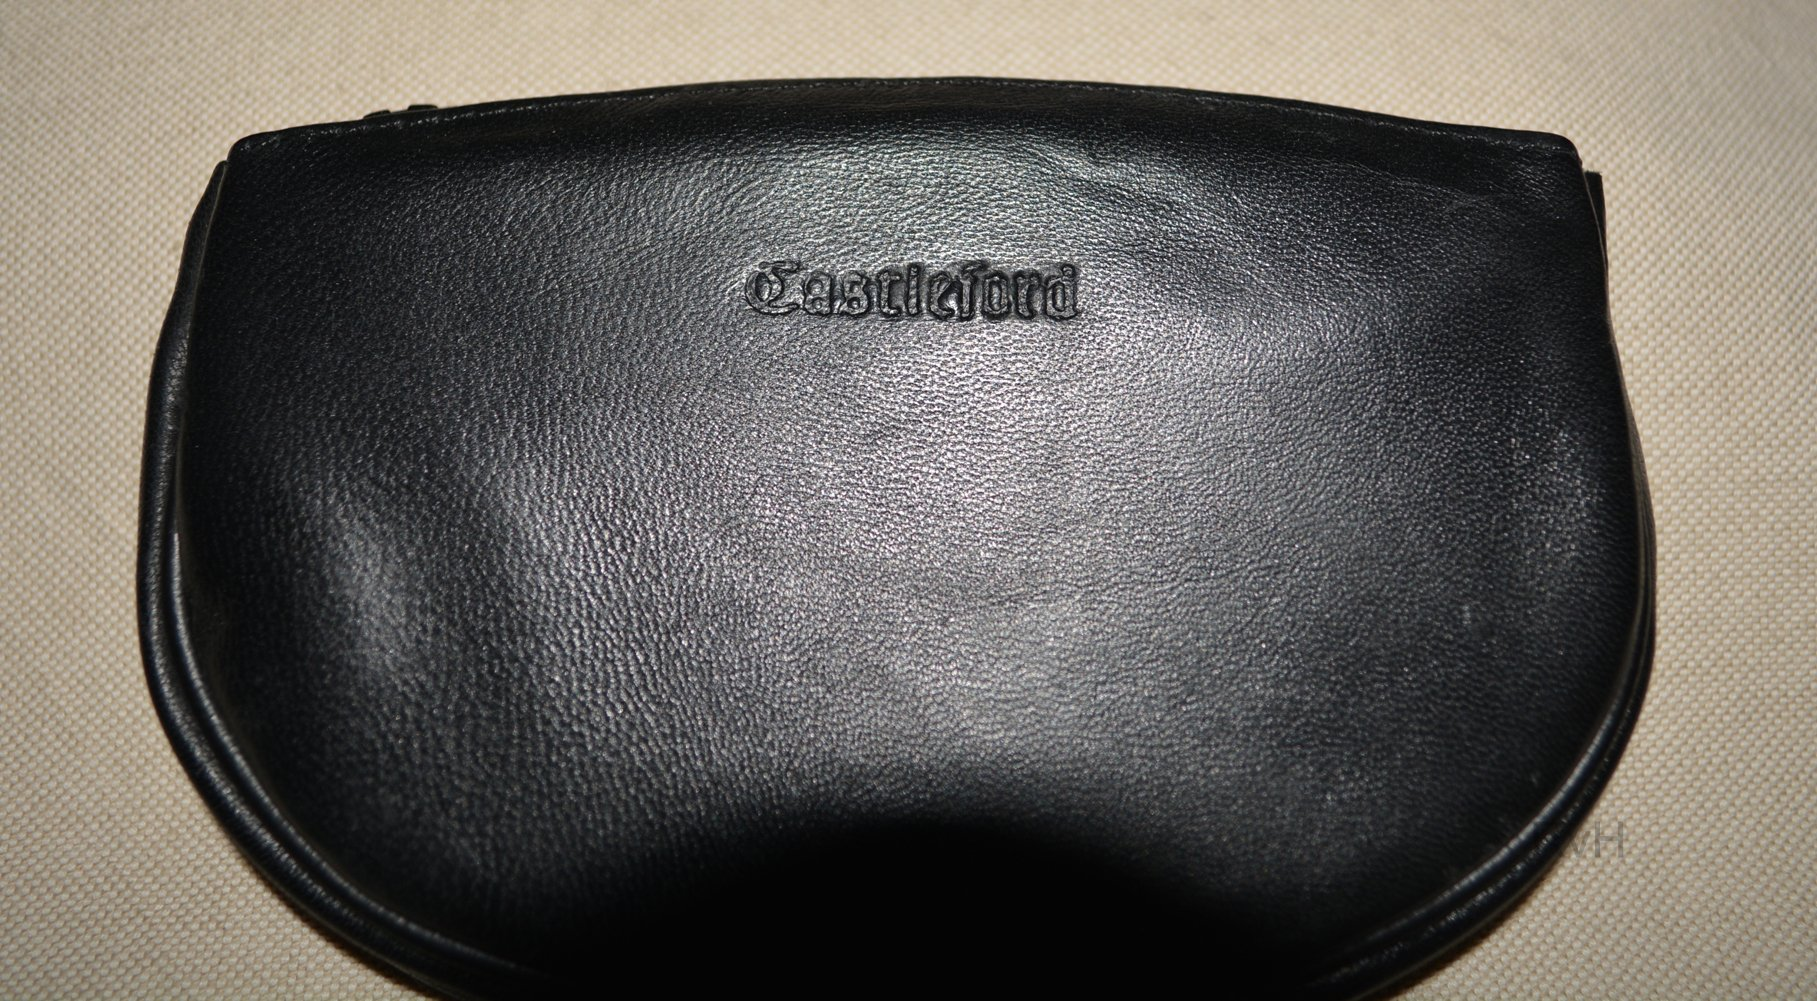 Castleford Zippered Leather Oval Pipe Tobacco Pouch